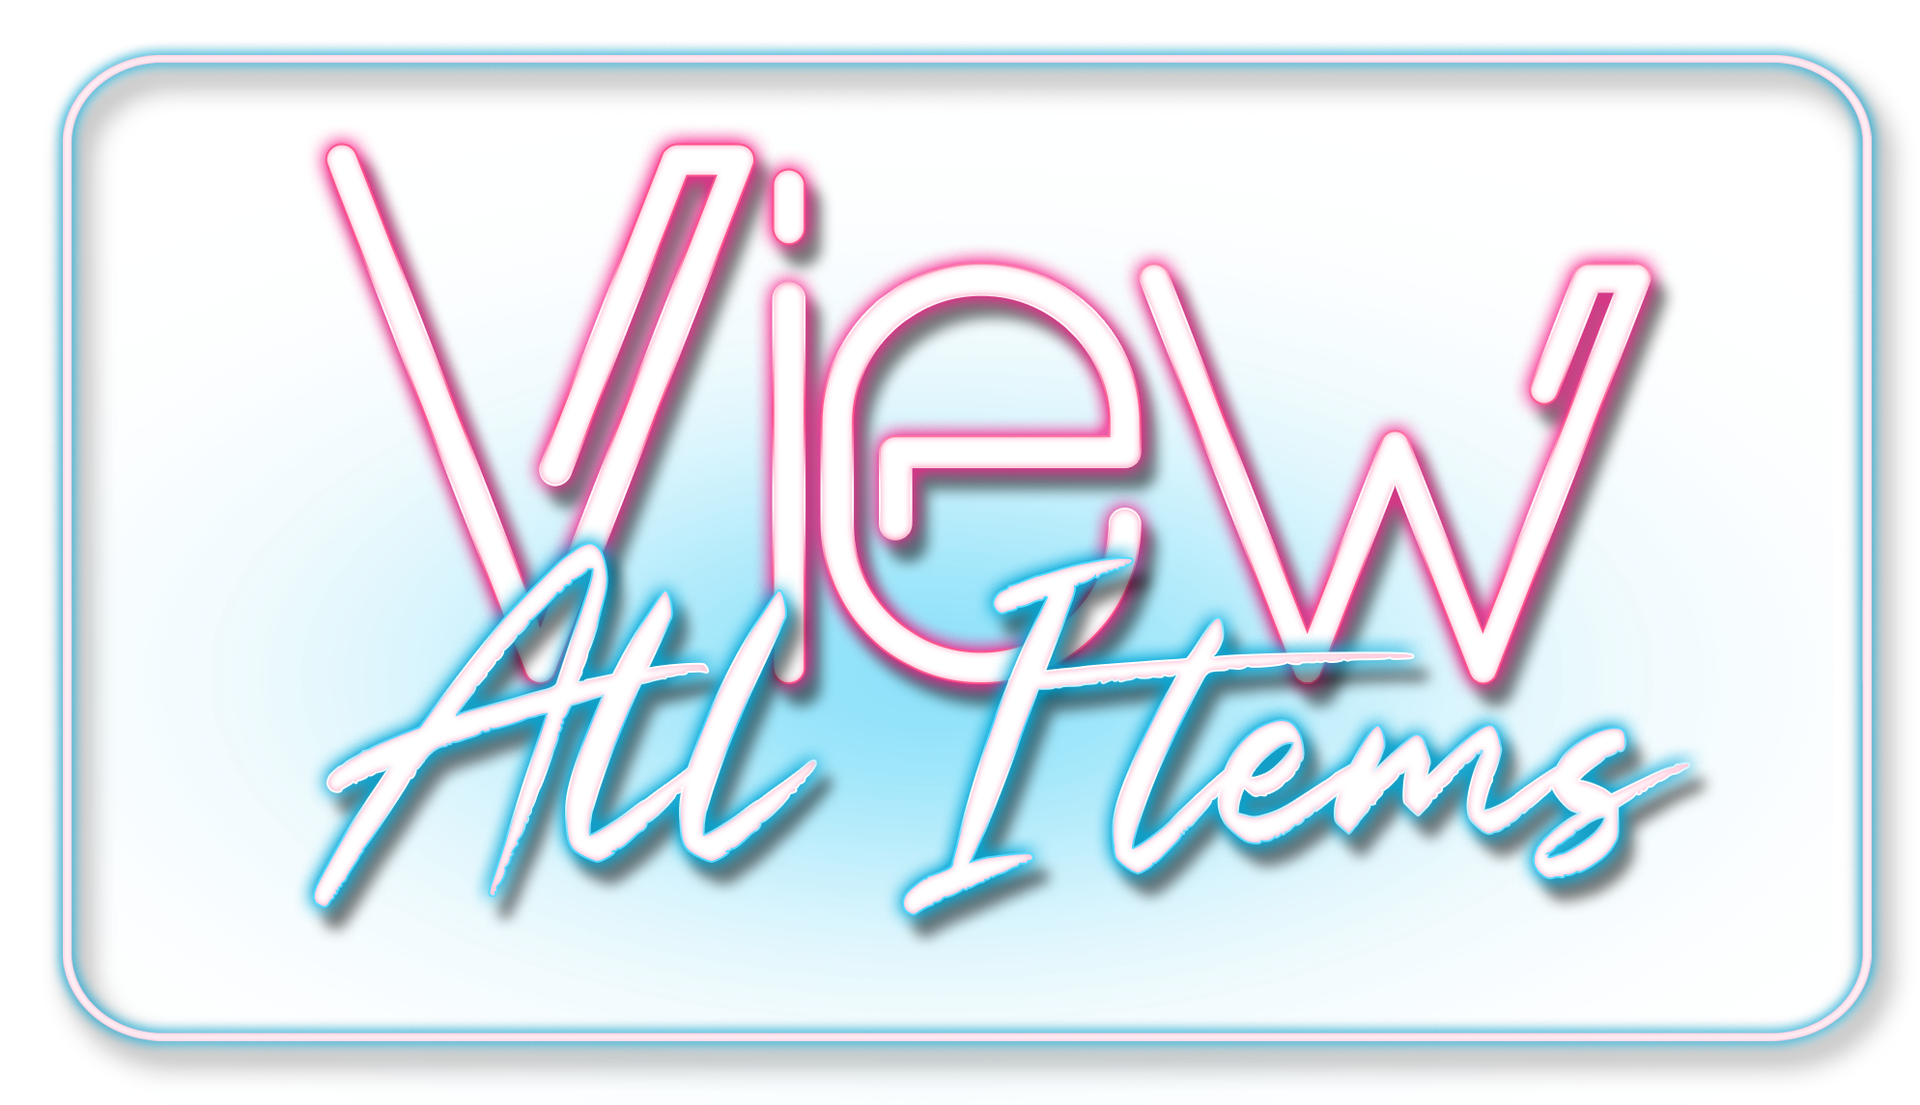 View All Items